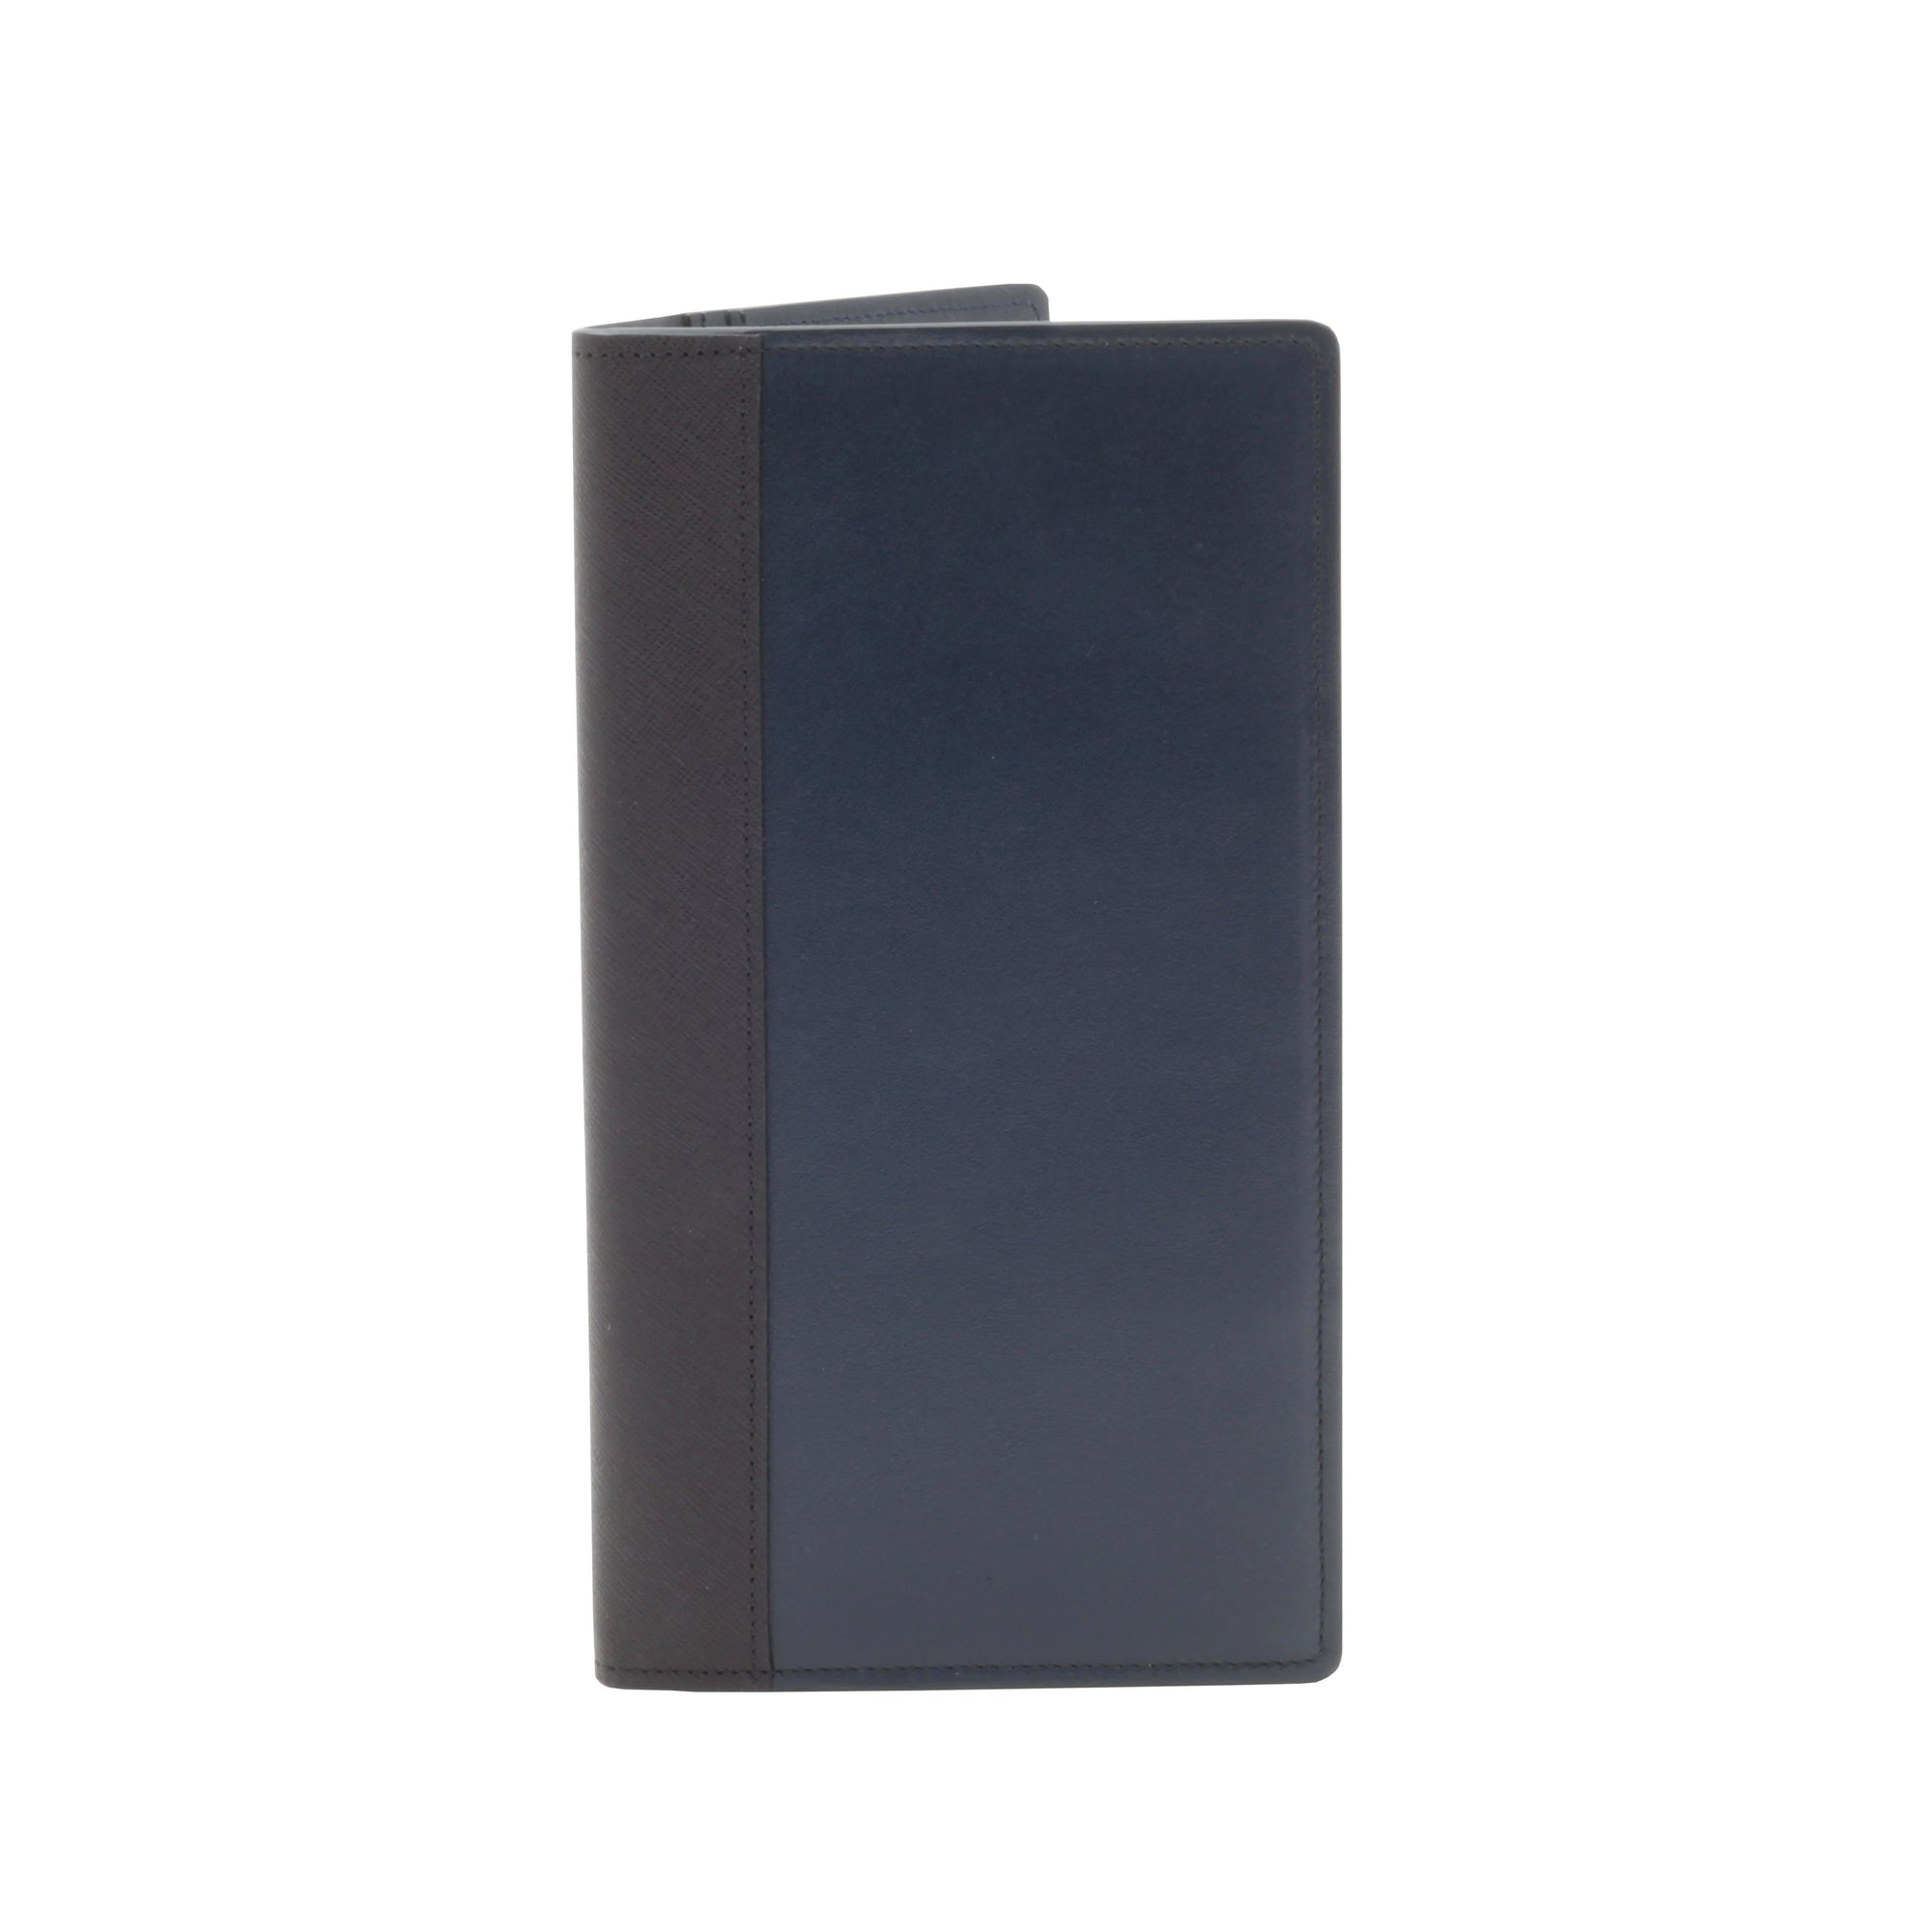 007 Navy Leather Travel Wallet By Globe-Trotter - 007STORE